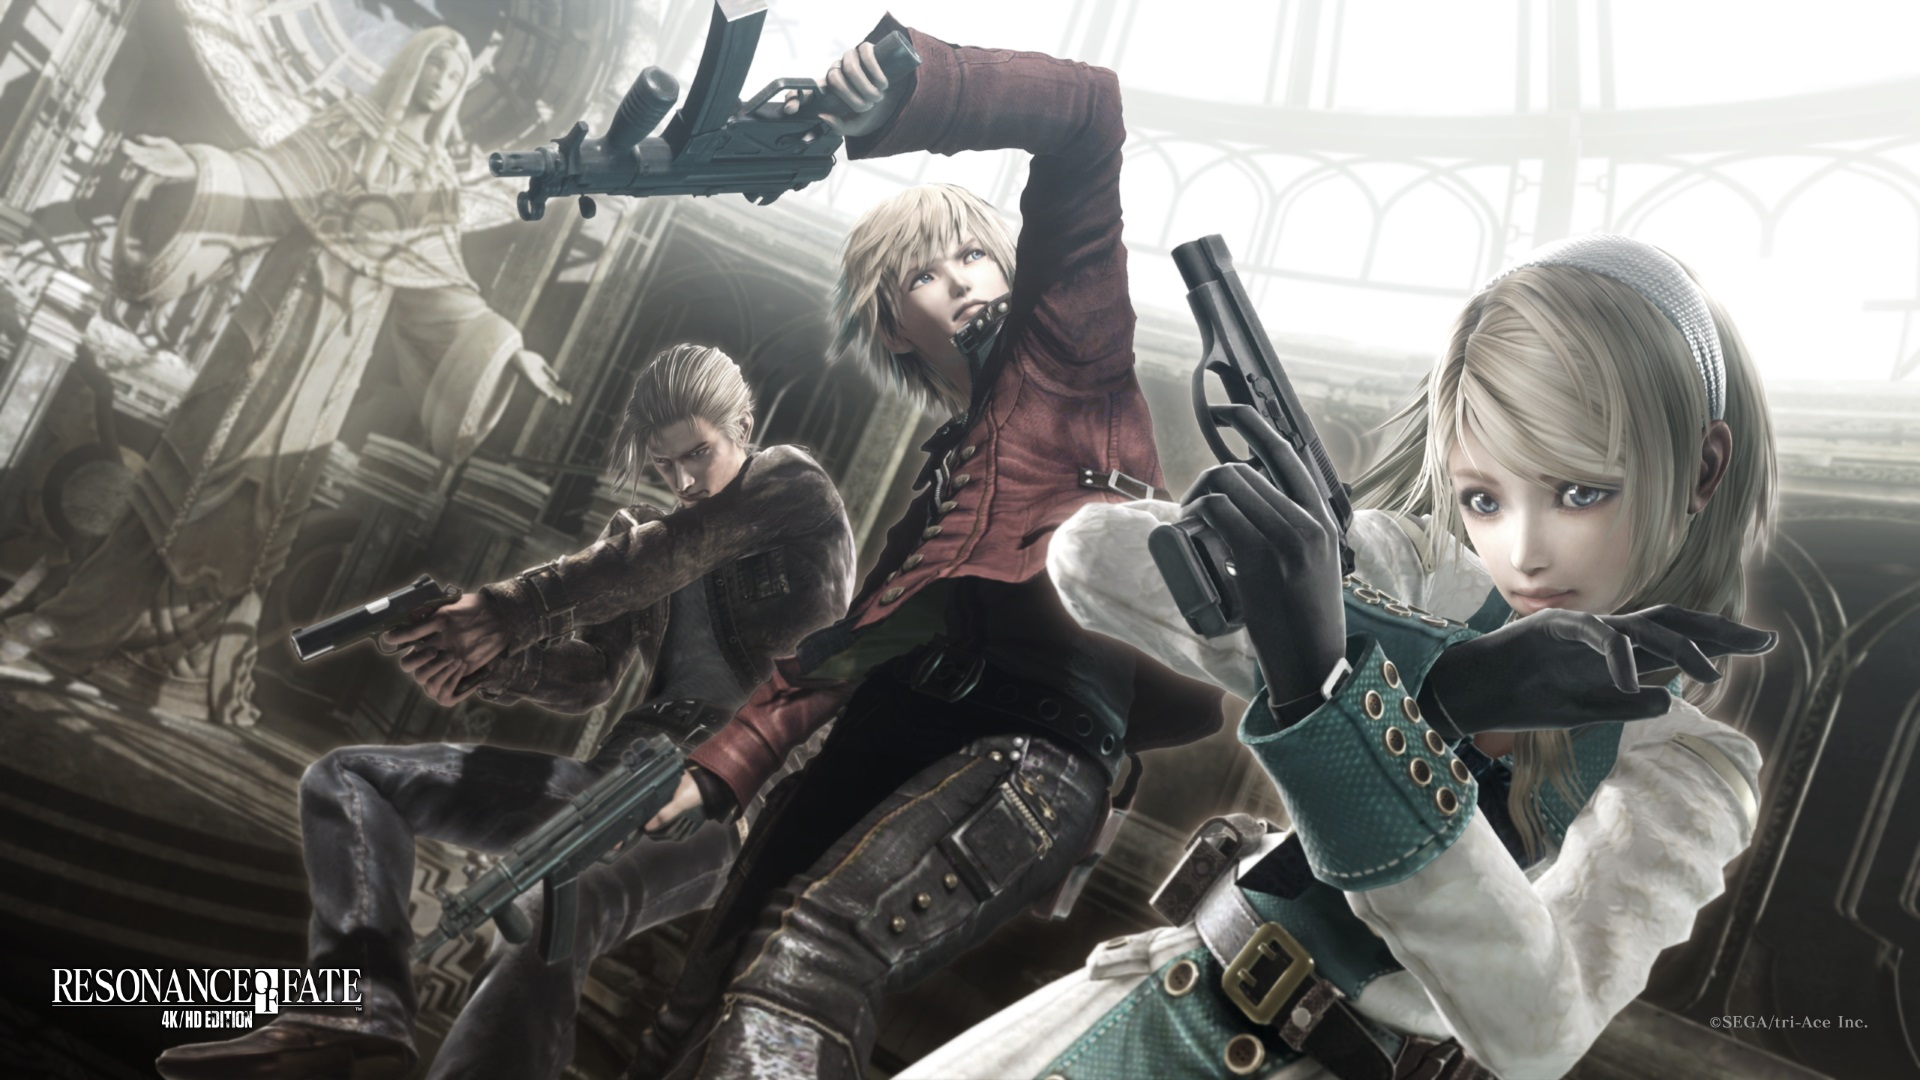 دانلود ترینر بازی RESONANCE OF FATE END OF ETERNITY 4K HD EDITION